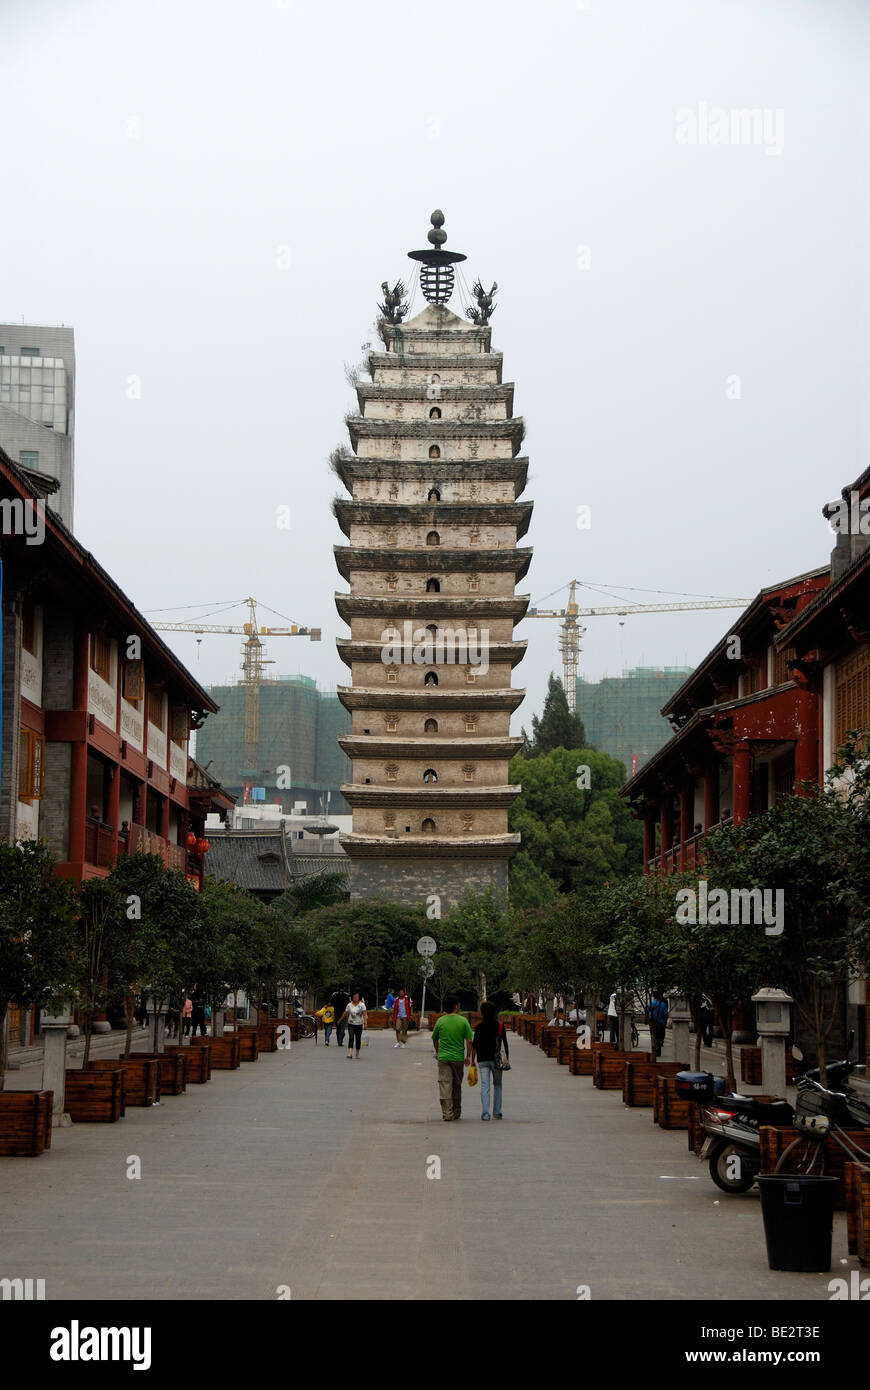 Old Buddhist tower, East Pagoda in the old city, Kunming, Yunnan Province, People's Republic of China, Asia - Stock Image